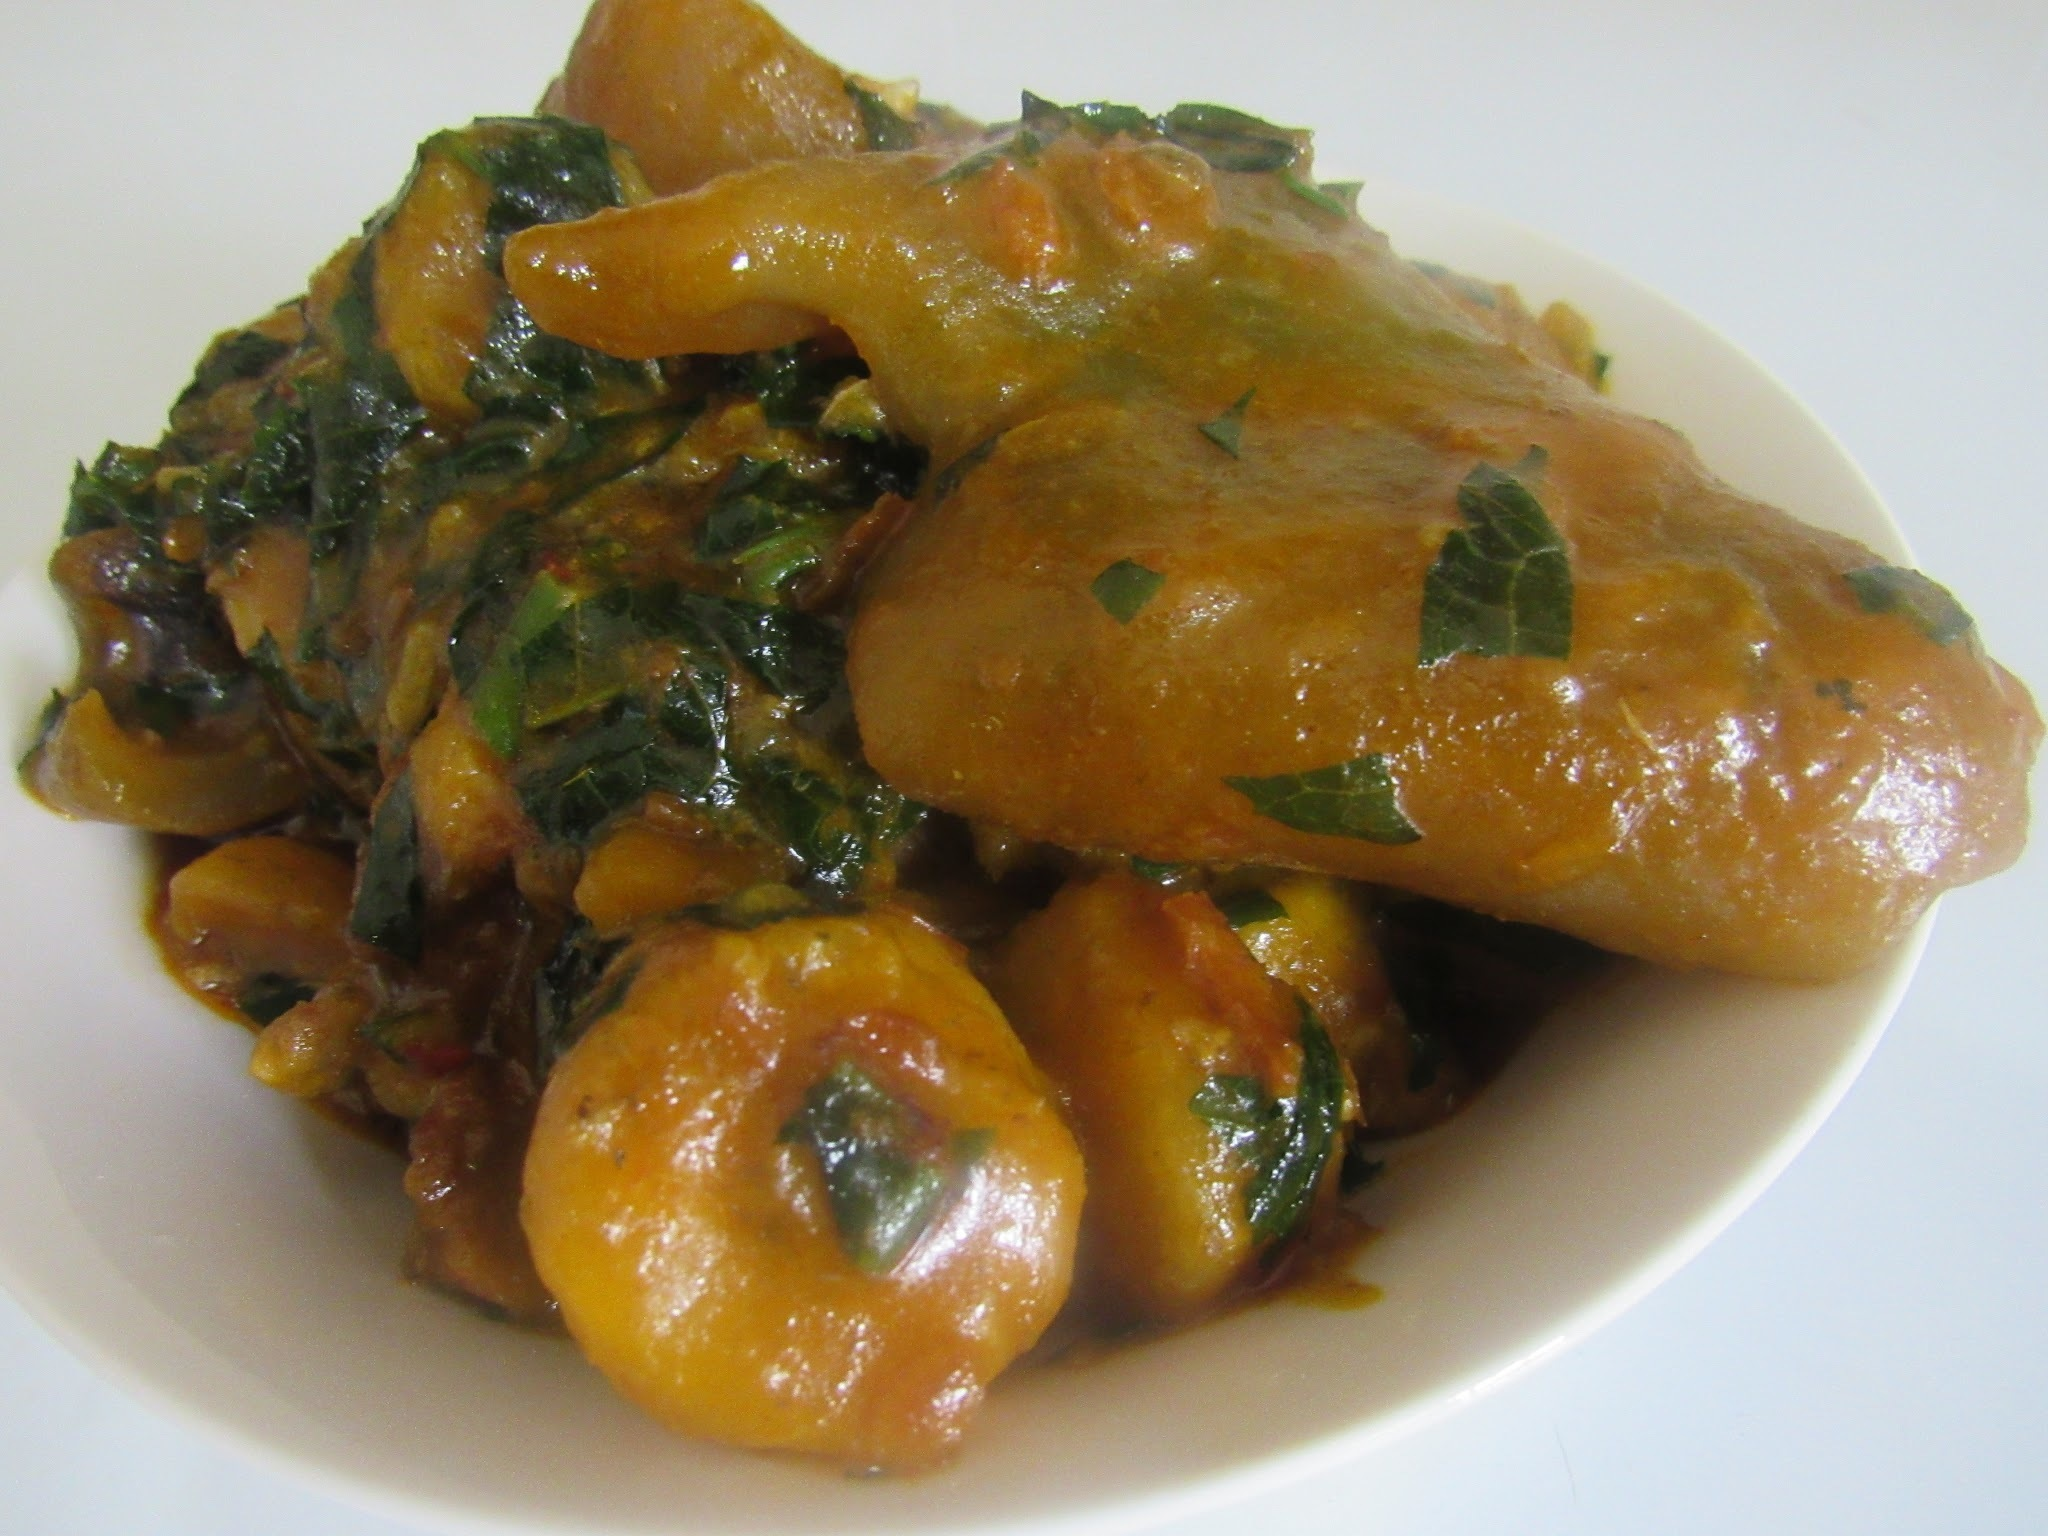 Nigerian plantain porridge with ugu vegetable (Fluted pumpkin)